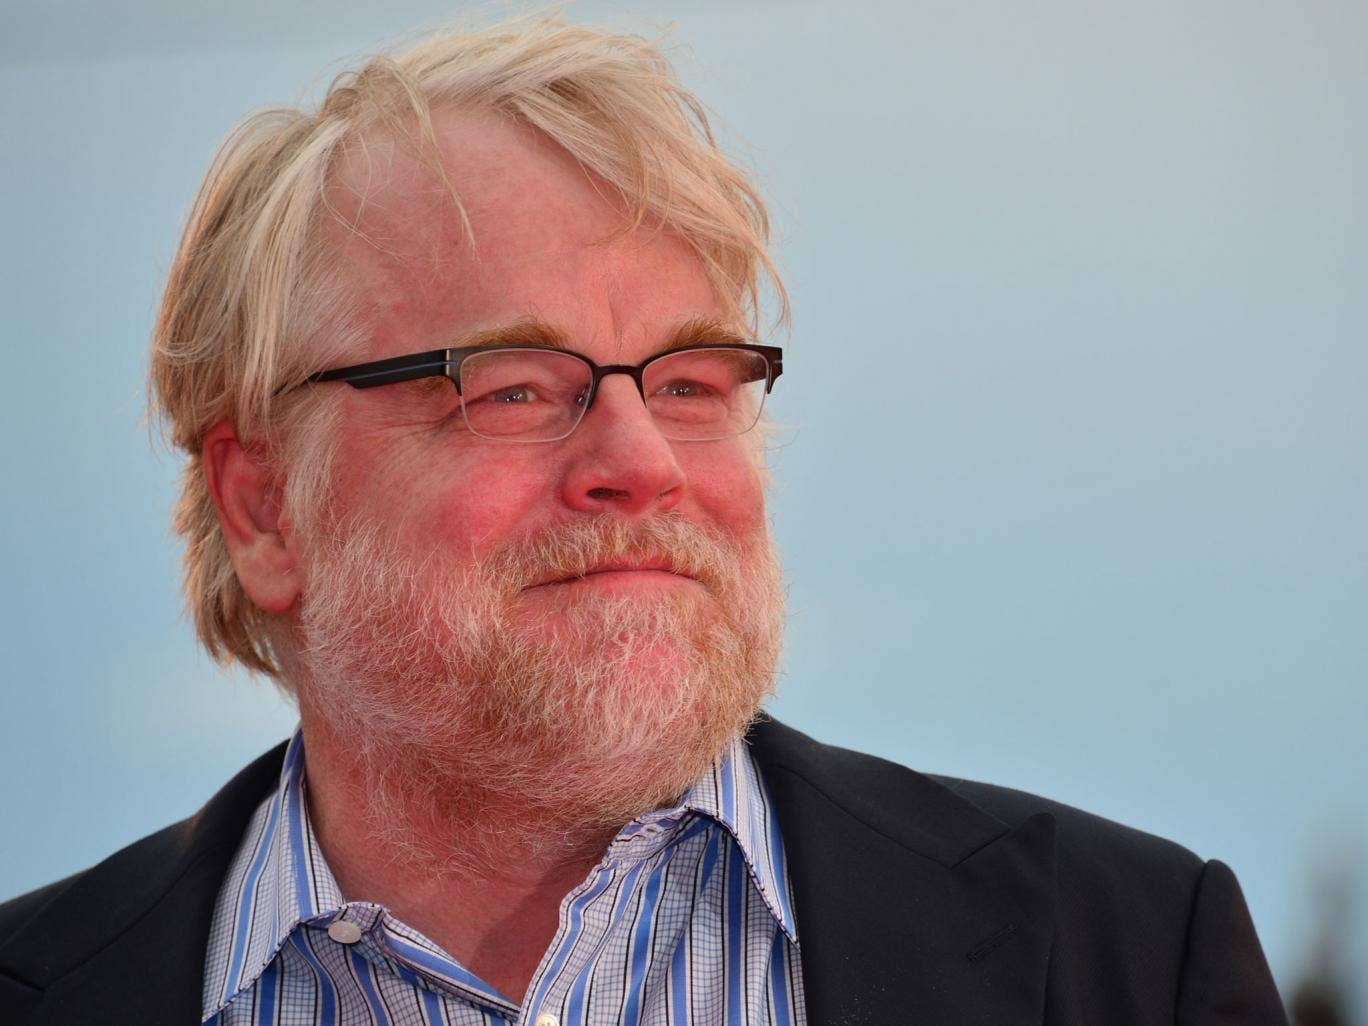 Philip Seymour Hoffman was due to star in a new comedy series called Happyish, the future of which now looks uncertain